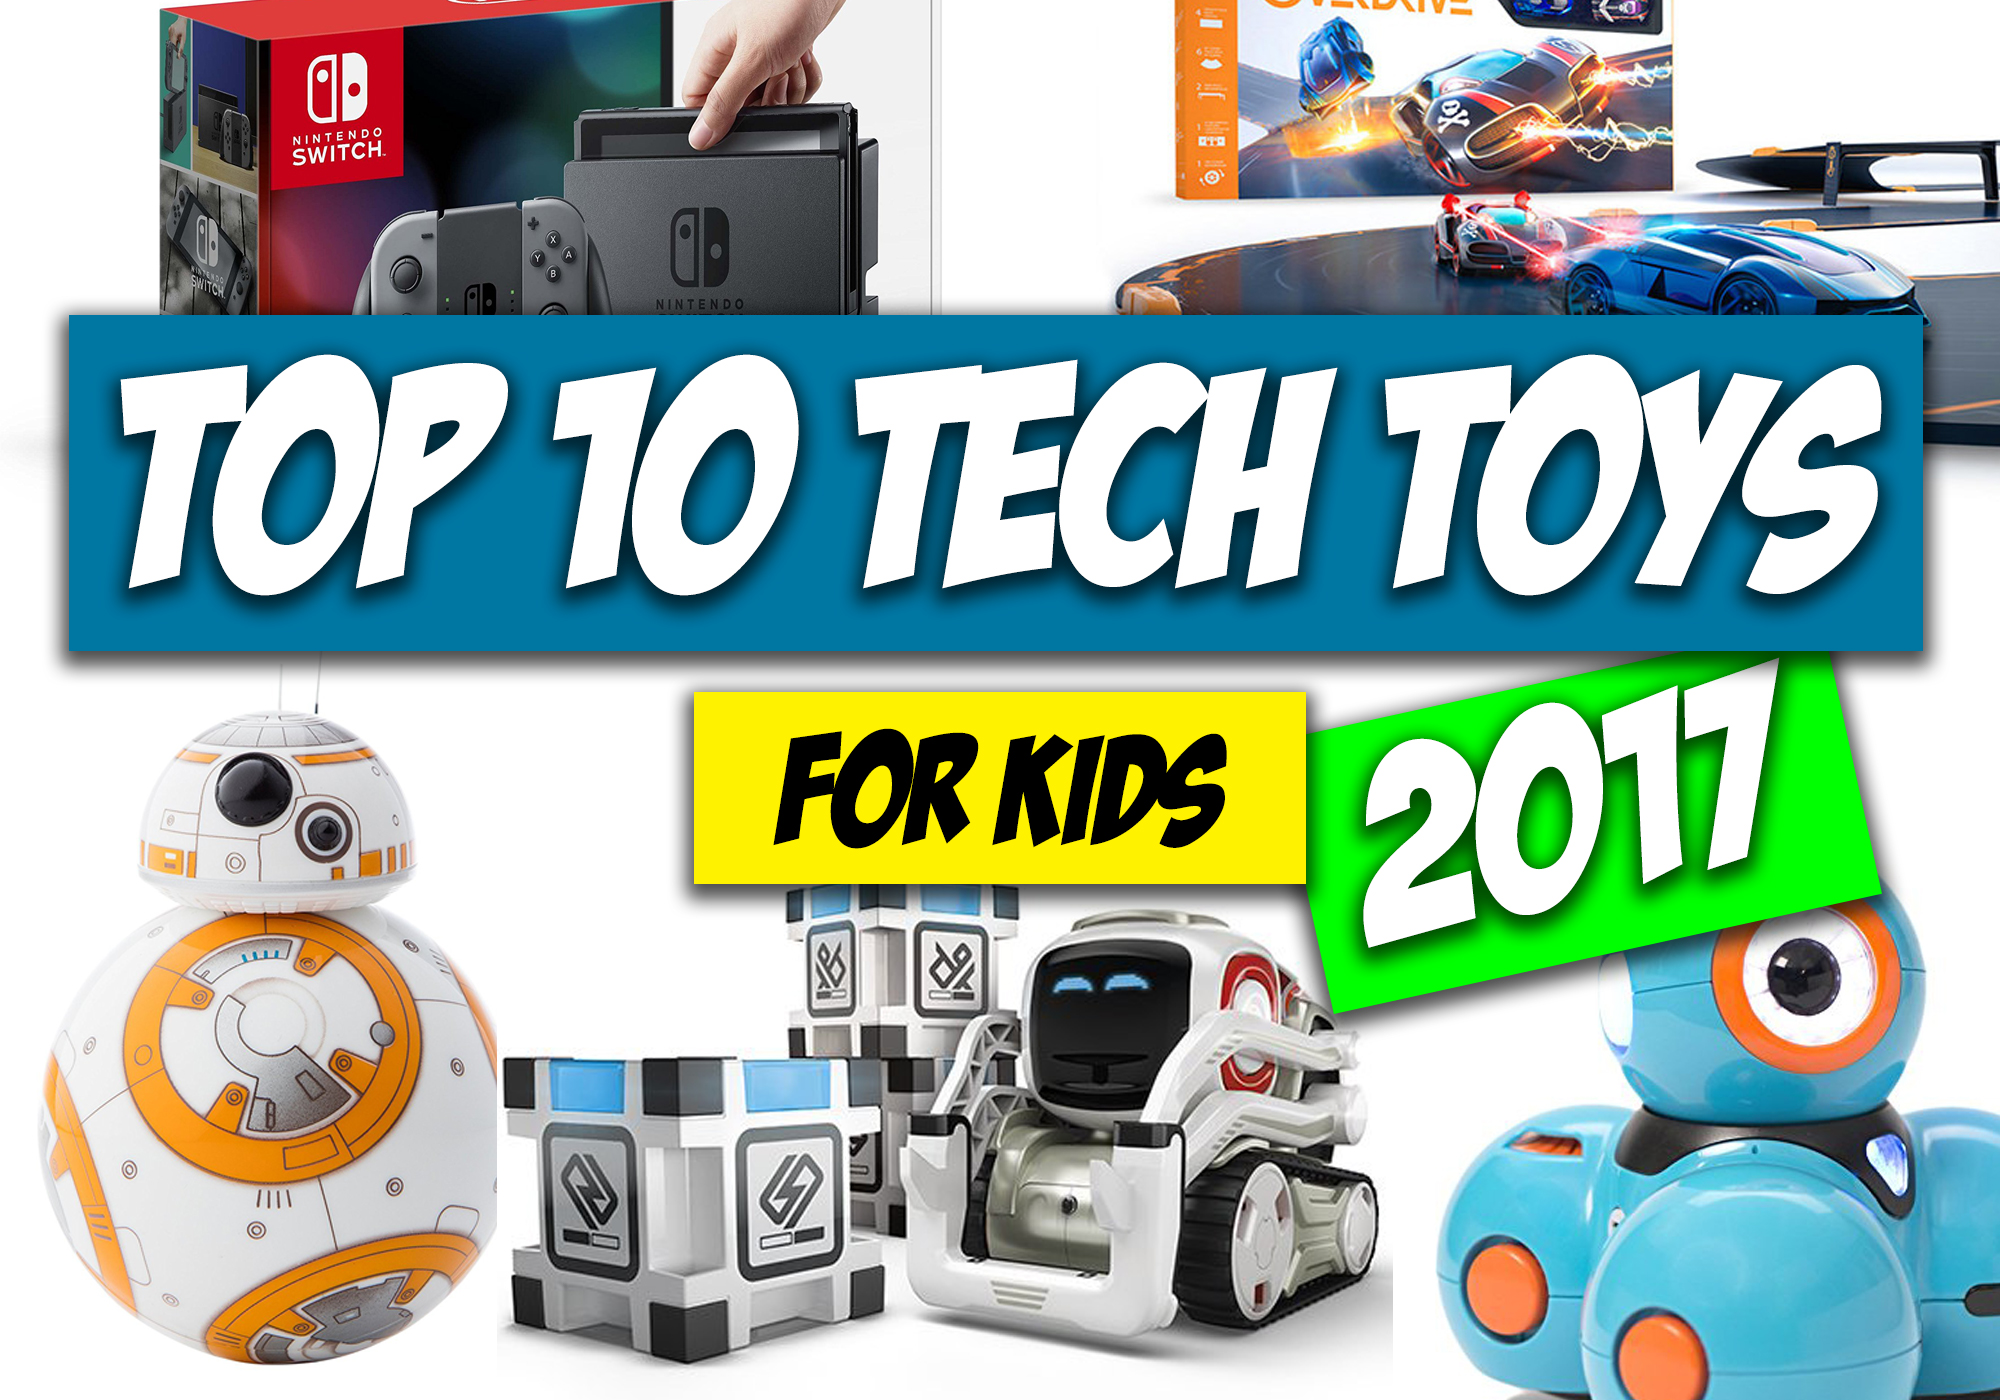 Top 10 Tech Christmas Gifts For Kids — Learn How